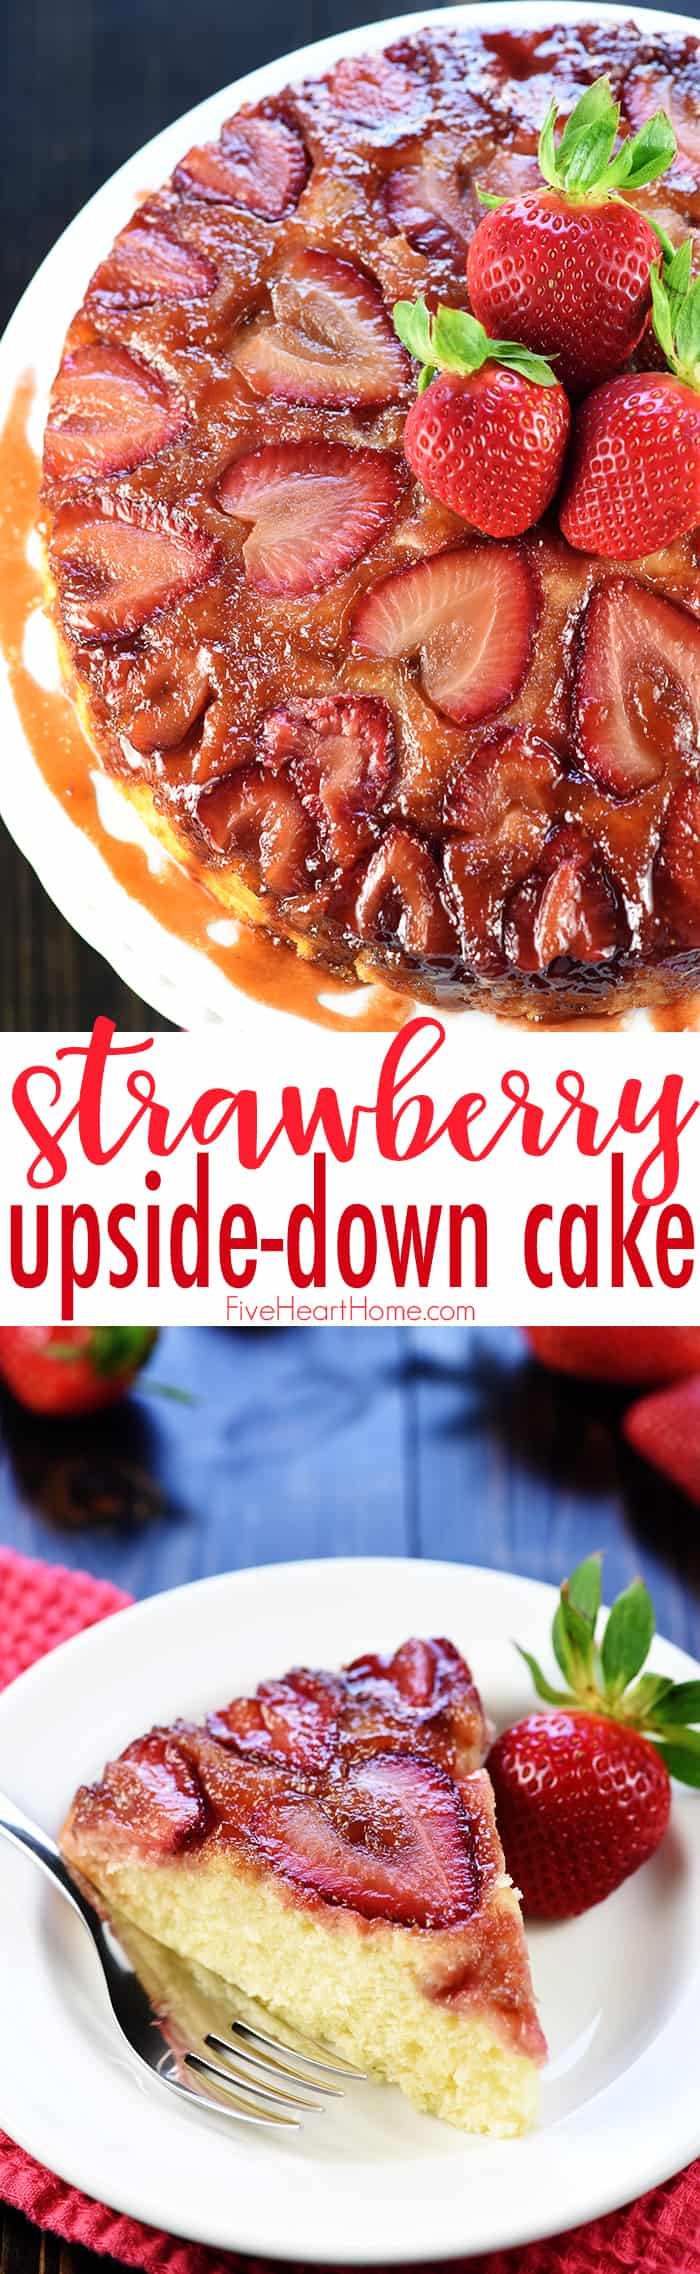 Strawberry Upside-Down Cake ~ a delicious twist on a classic recipe, showcasing fresh strawberries in place of pineapple for an easy spring or summer dessert! | FiveHeartHome.com via @fivehearthome